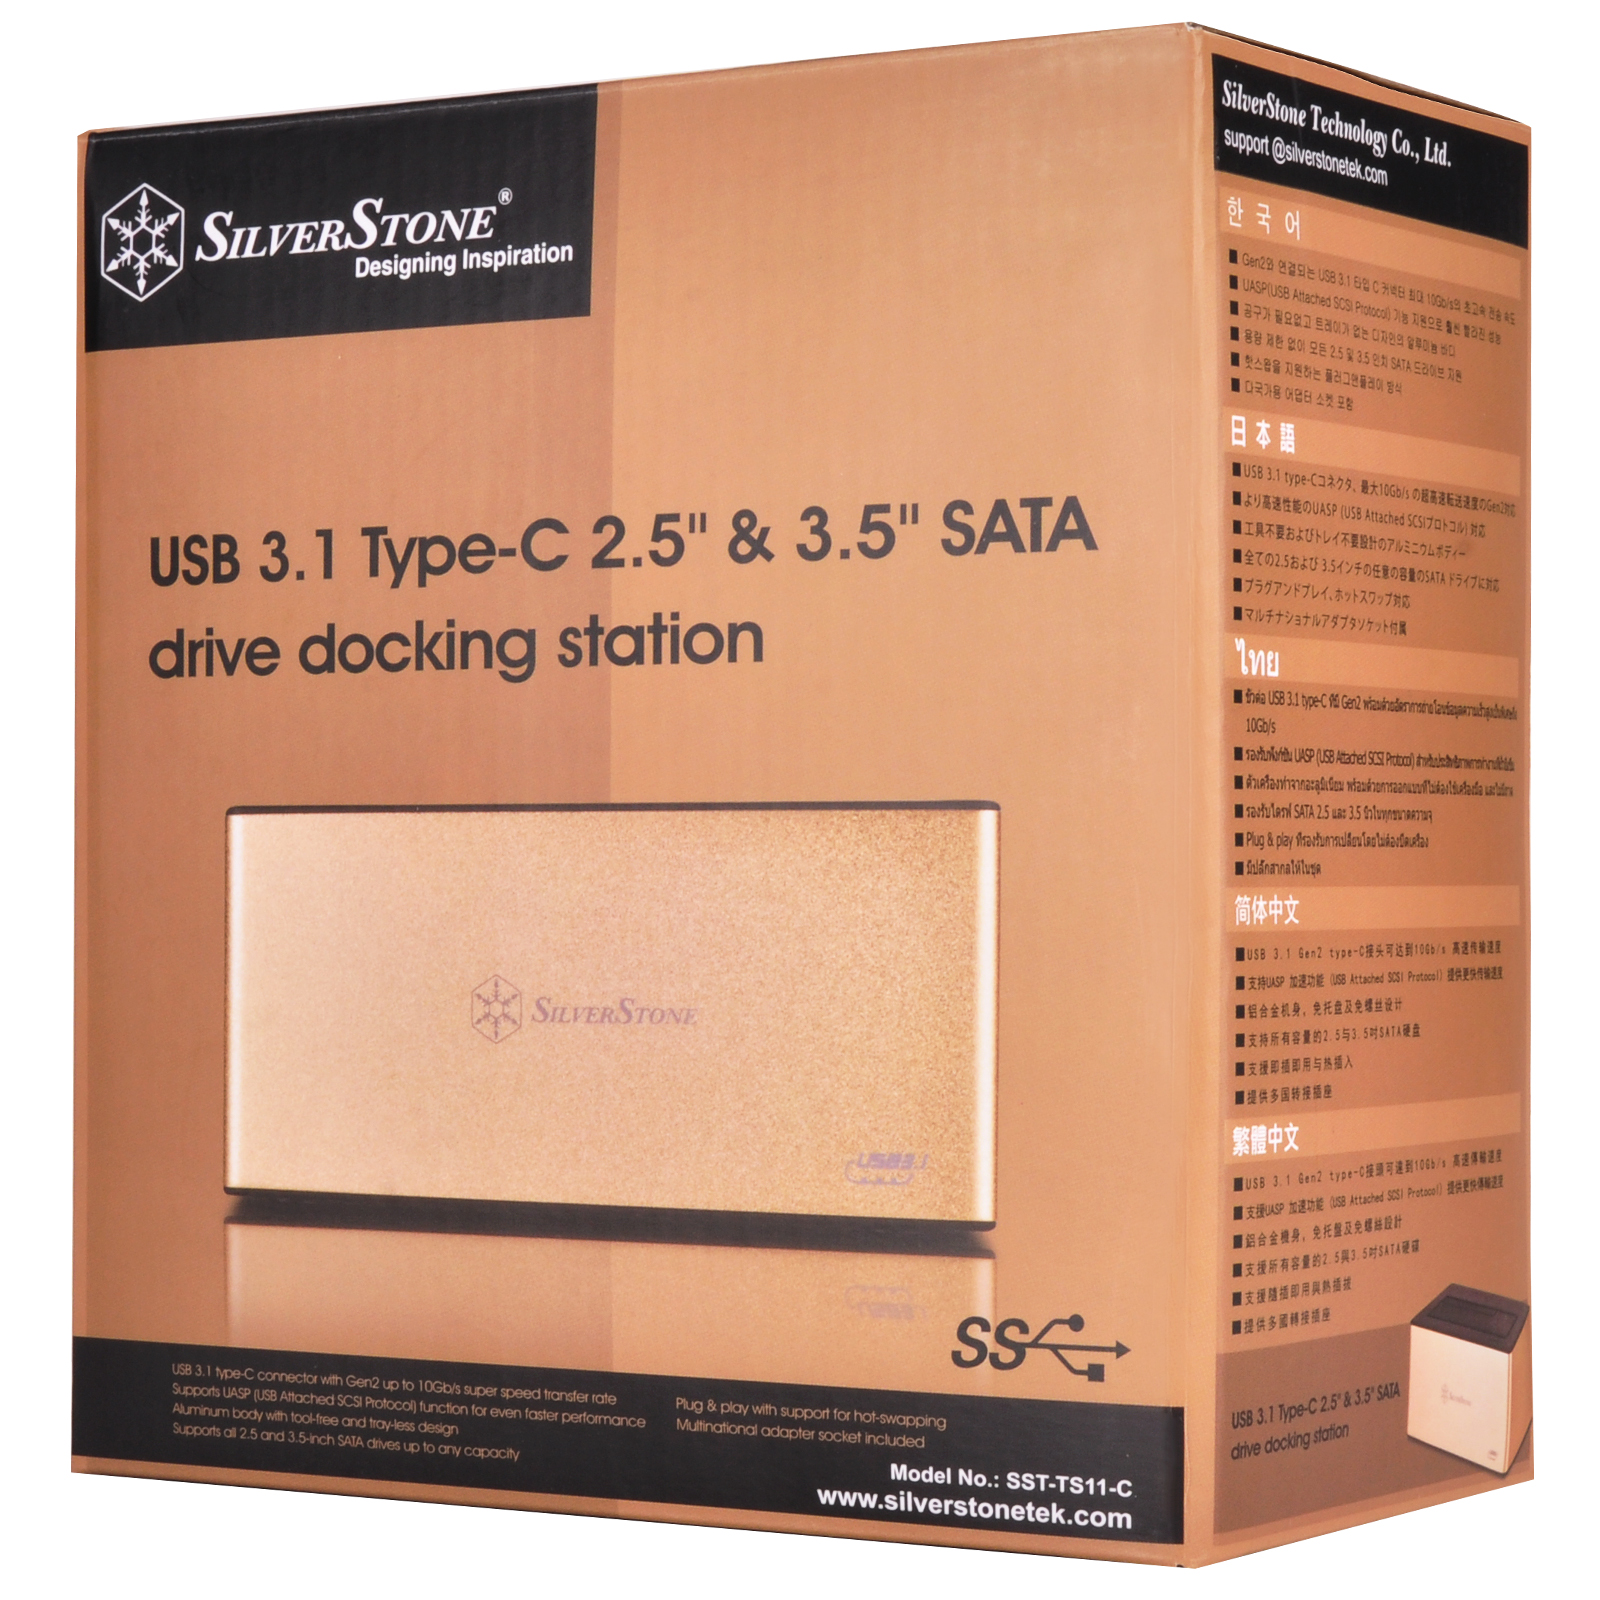 SilverStone HARD DISK OR SSD DOCKING STATION USB 3.1 type-C